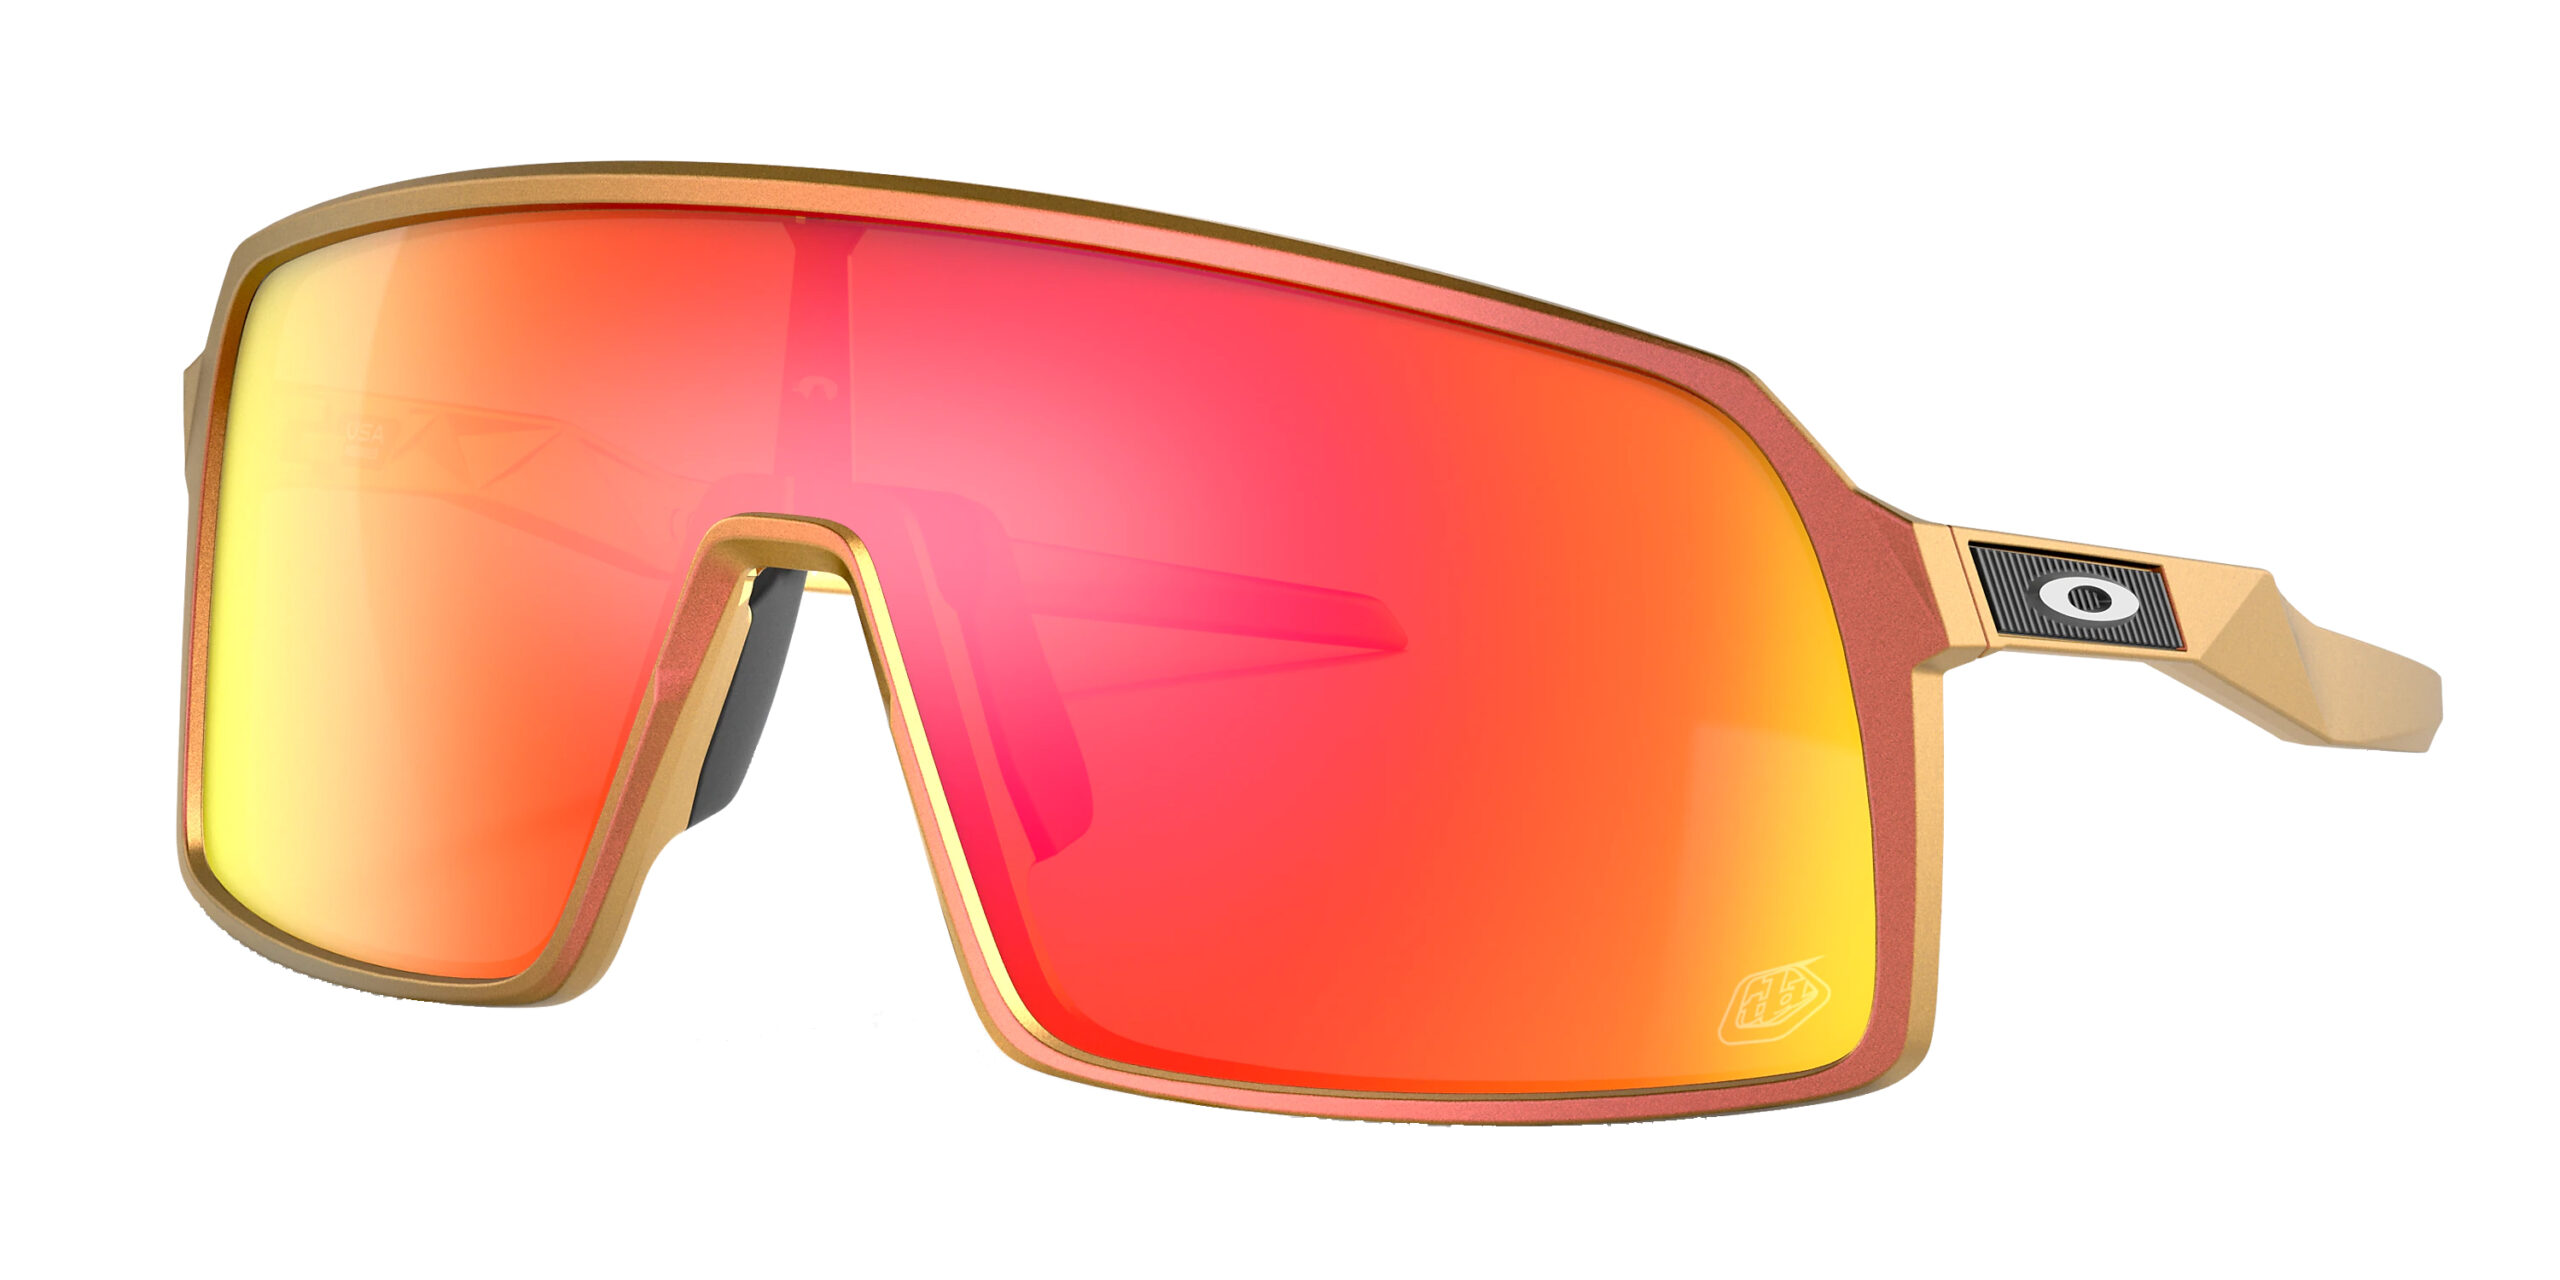 Oakley Sutro - TLD Red Gold Shift - Prizm Ruby - OO9406-4837 - 888392540348